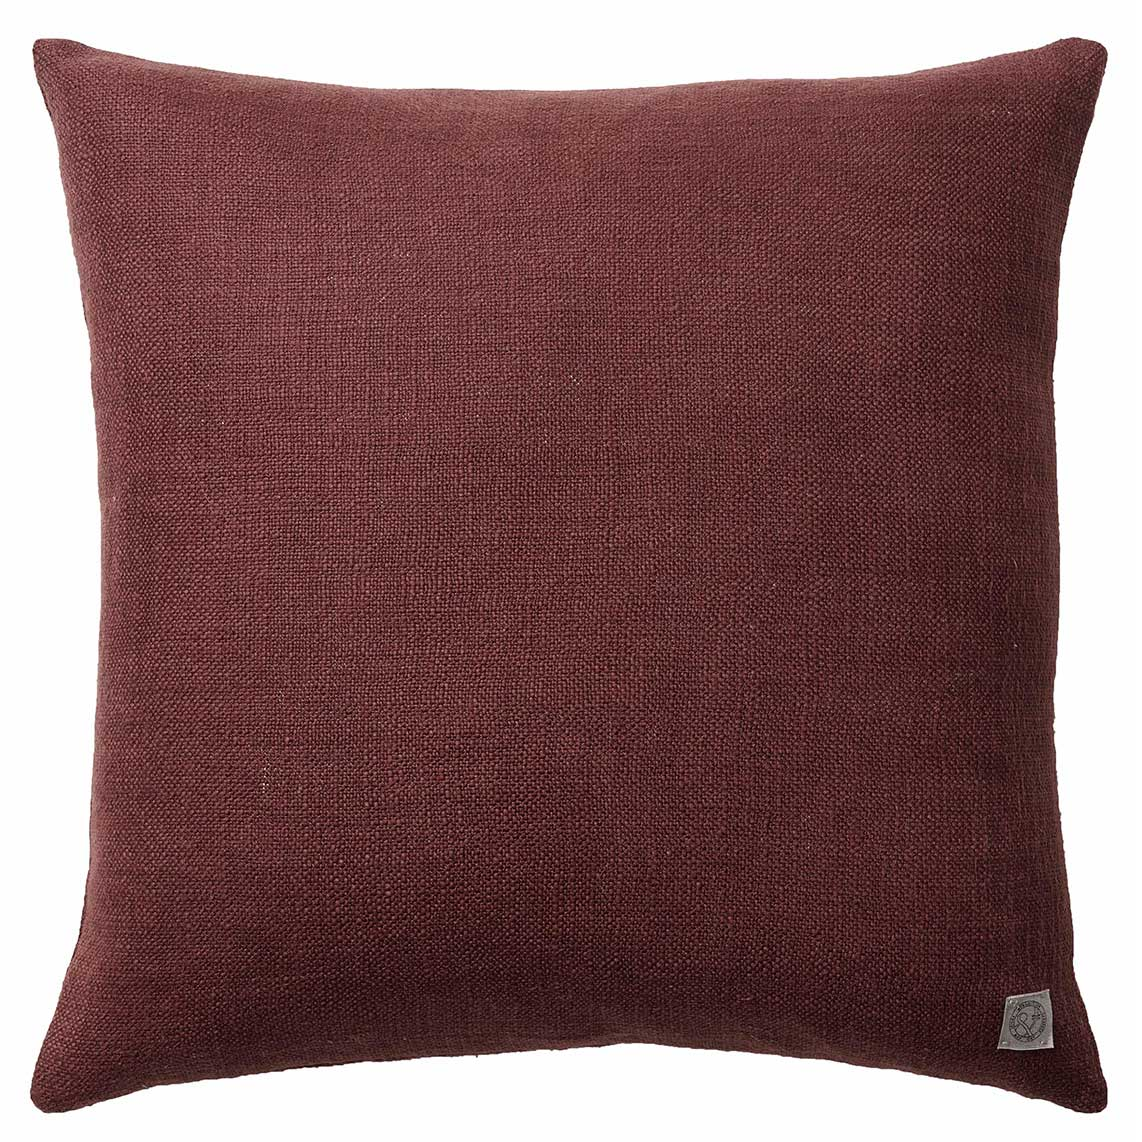 &Tradition-Collect Pude SC28 50x50, Burgundy/Heavy Linen